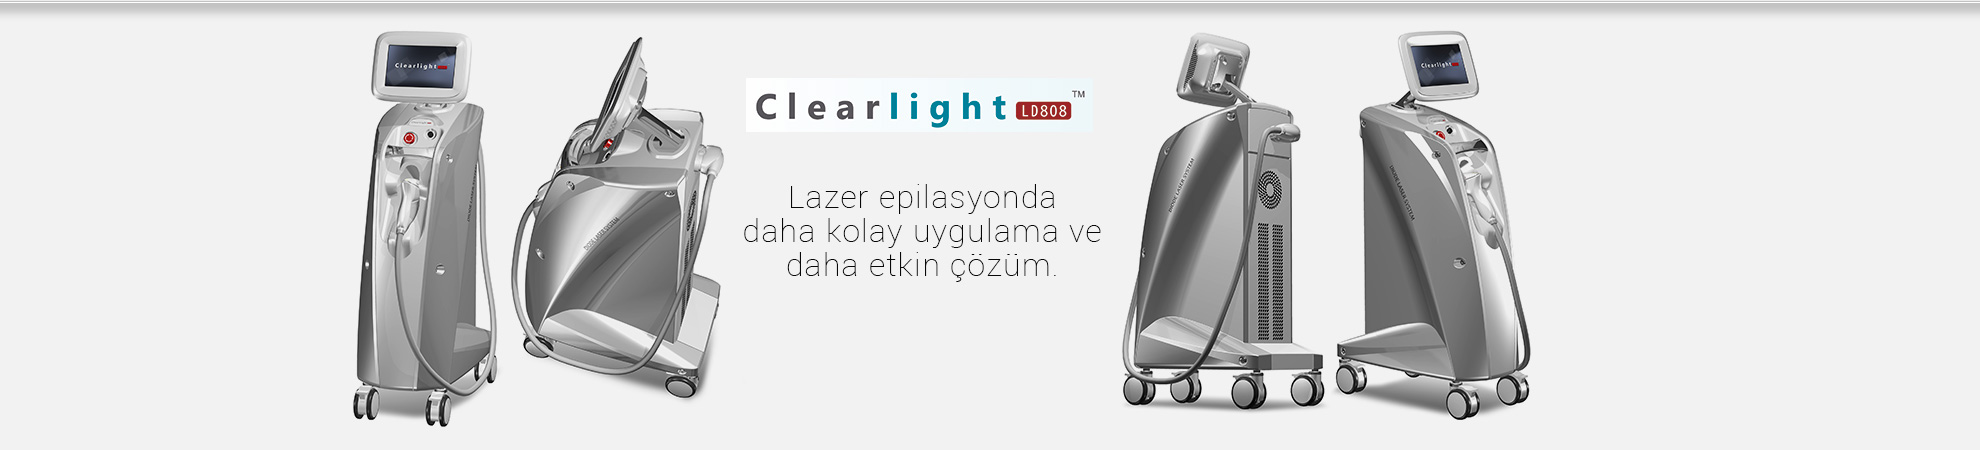 clear-light-banner